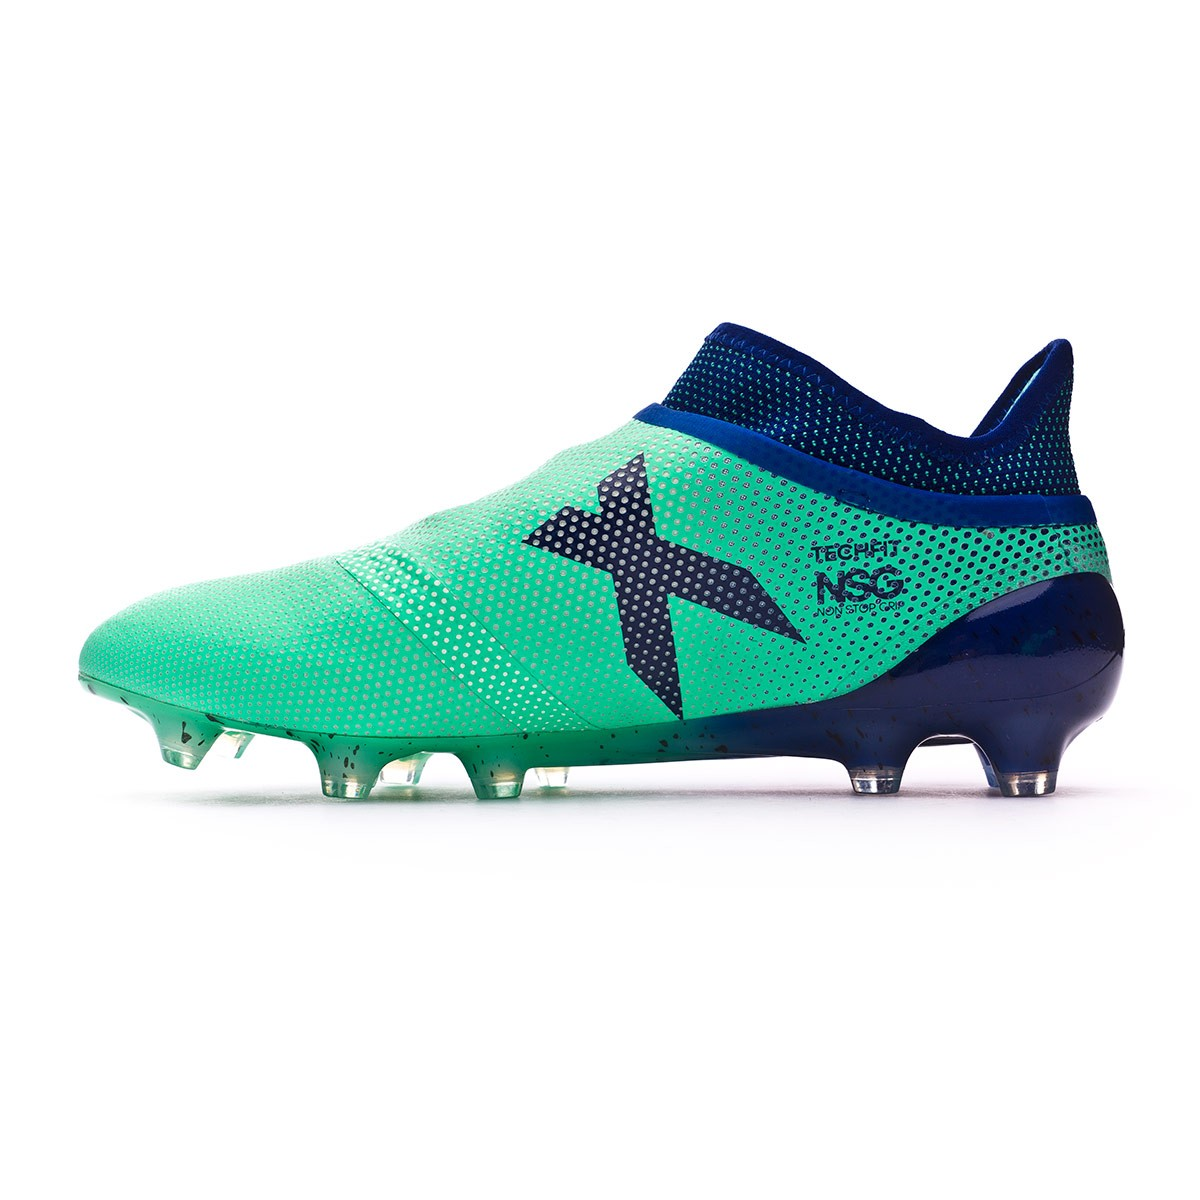 Bota X 17+ Purespeed FG Aero green-Unity ink-Hi-res green